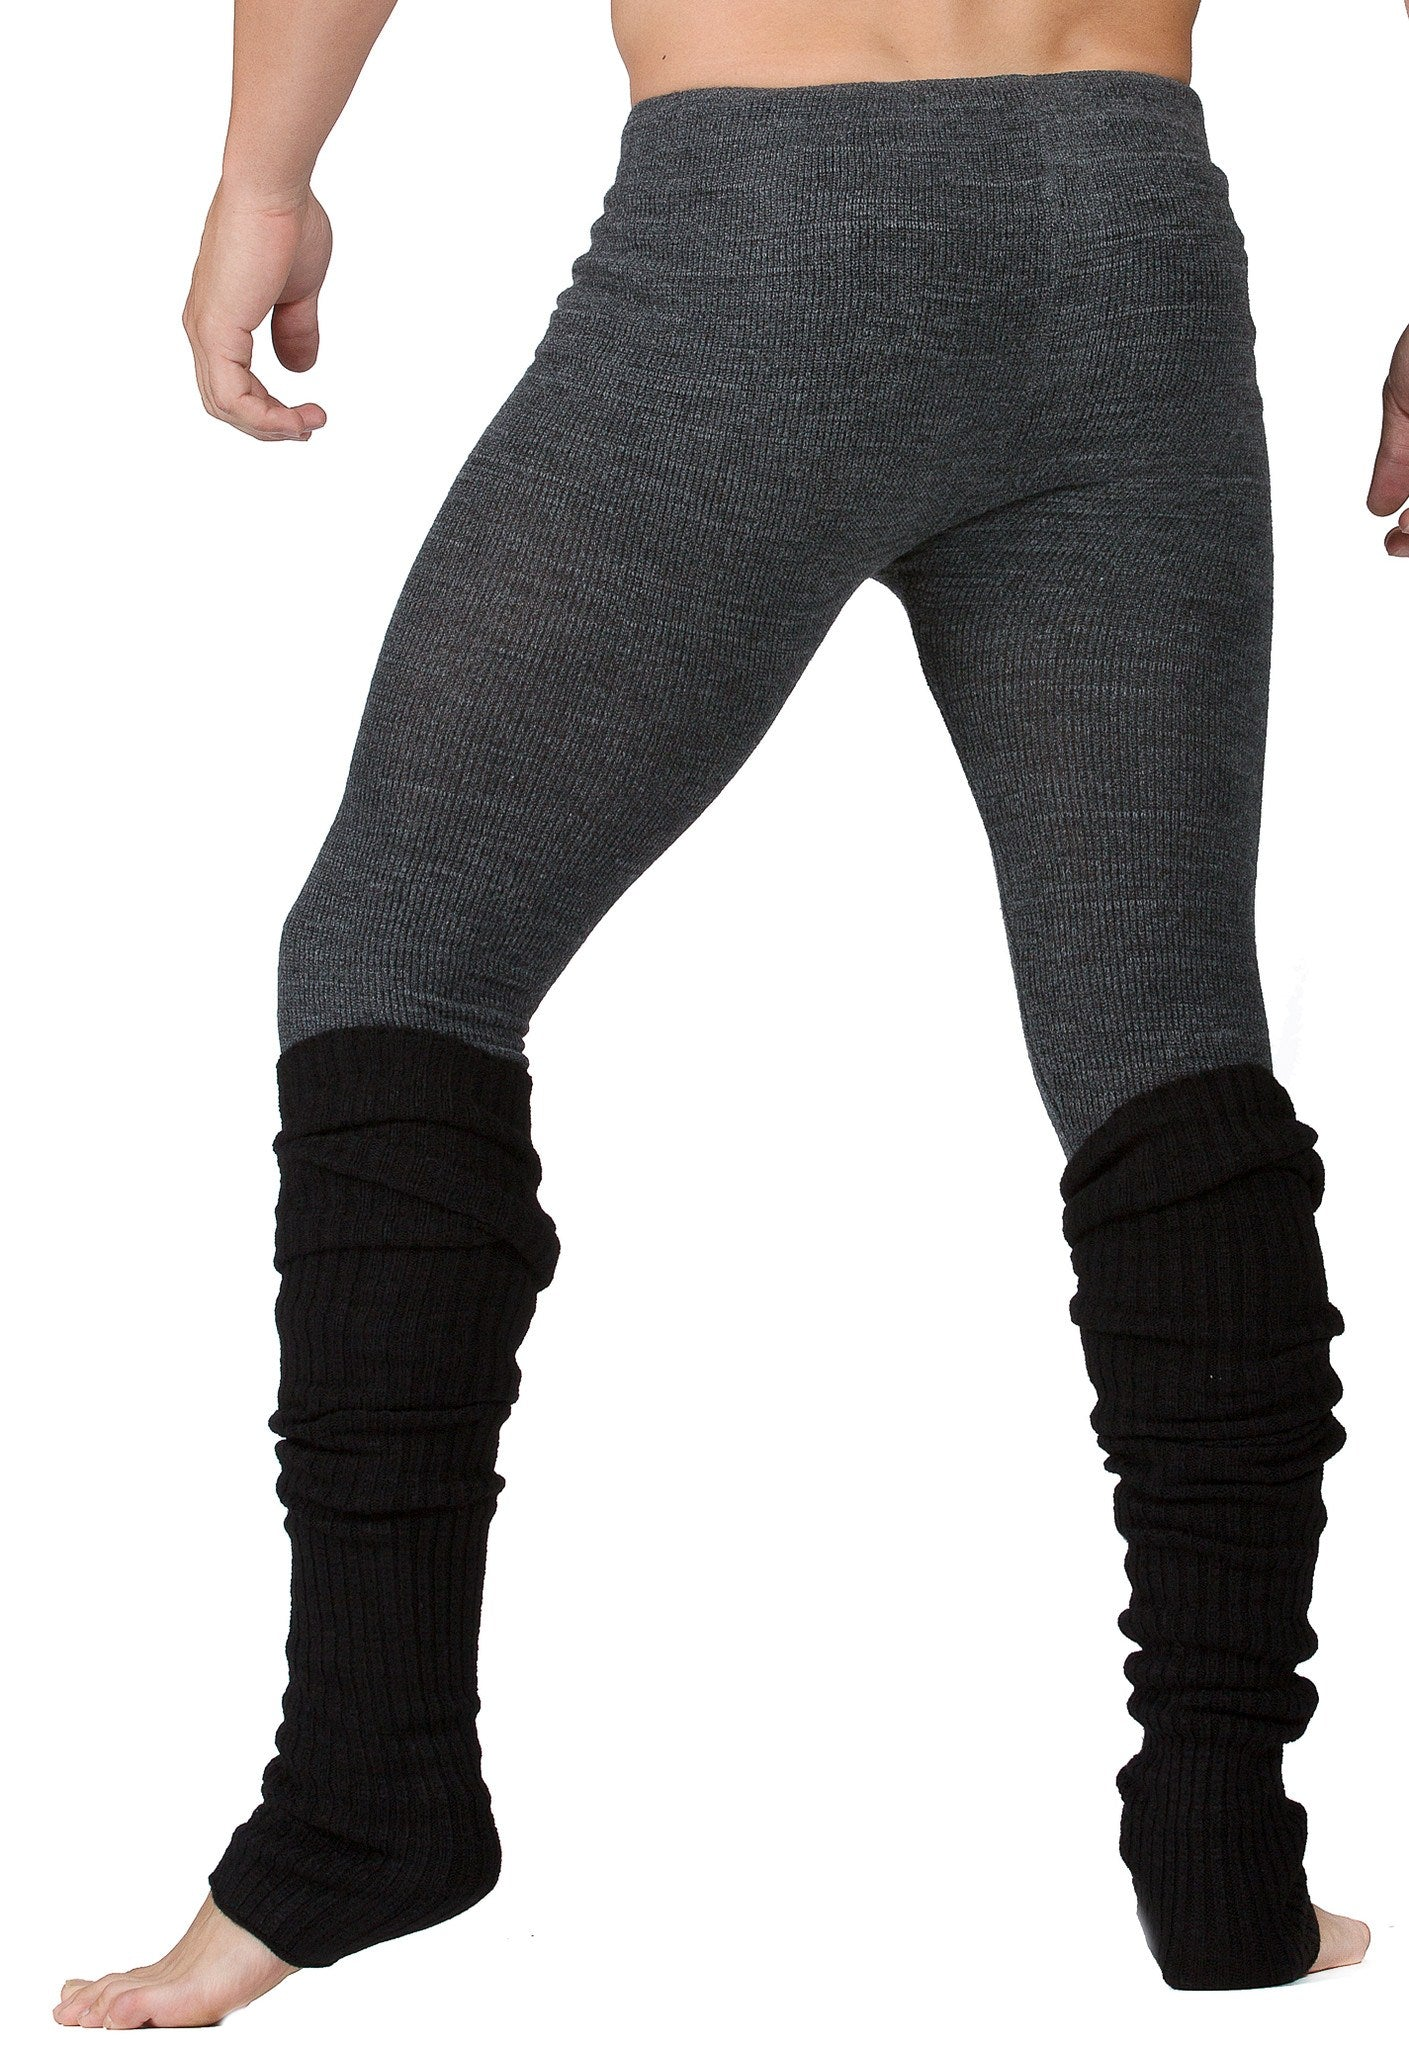 Men's Leg Warmers 16 Inch Stretch Knit Ribbed High Quality KD dance New York Made In USA @KDdanceNewYork #MadeInUSA - 3